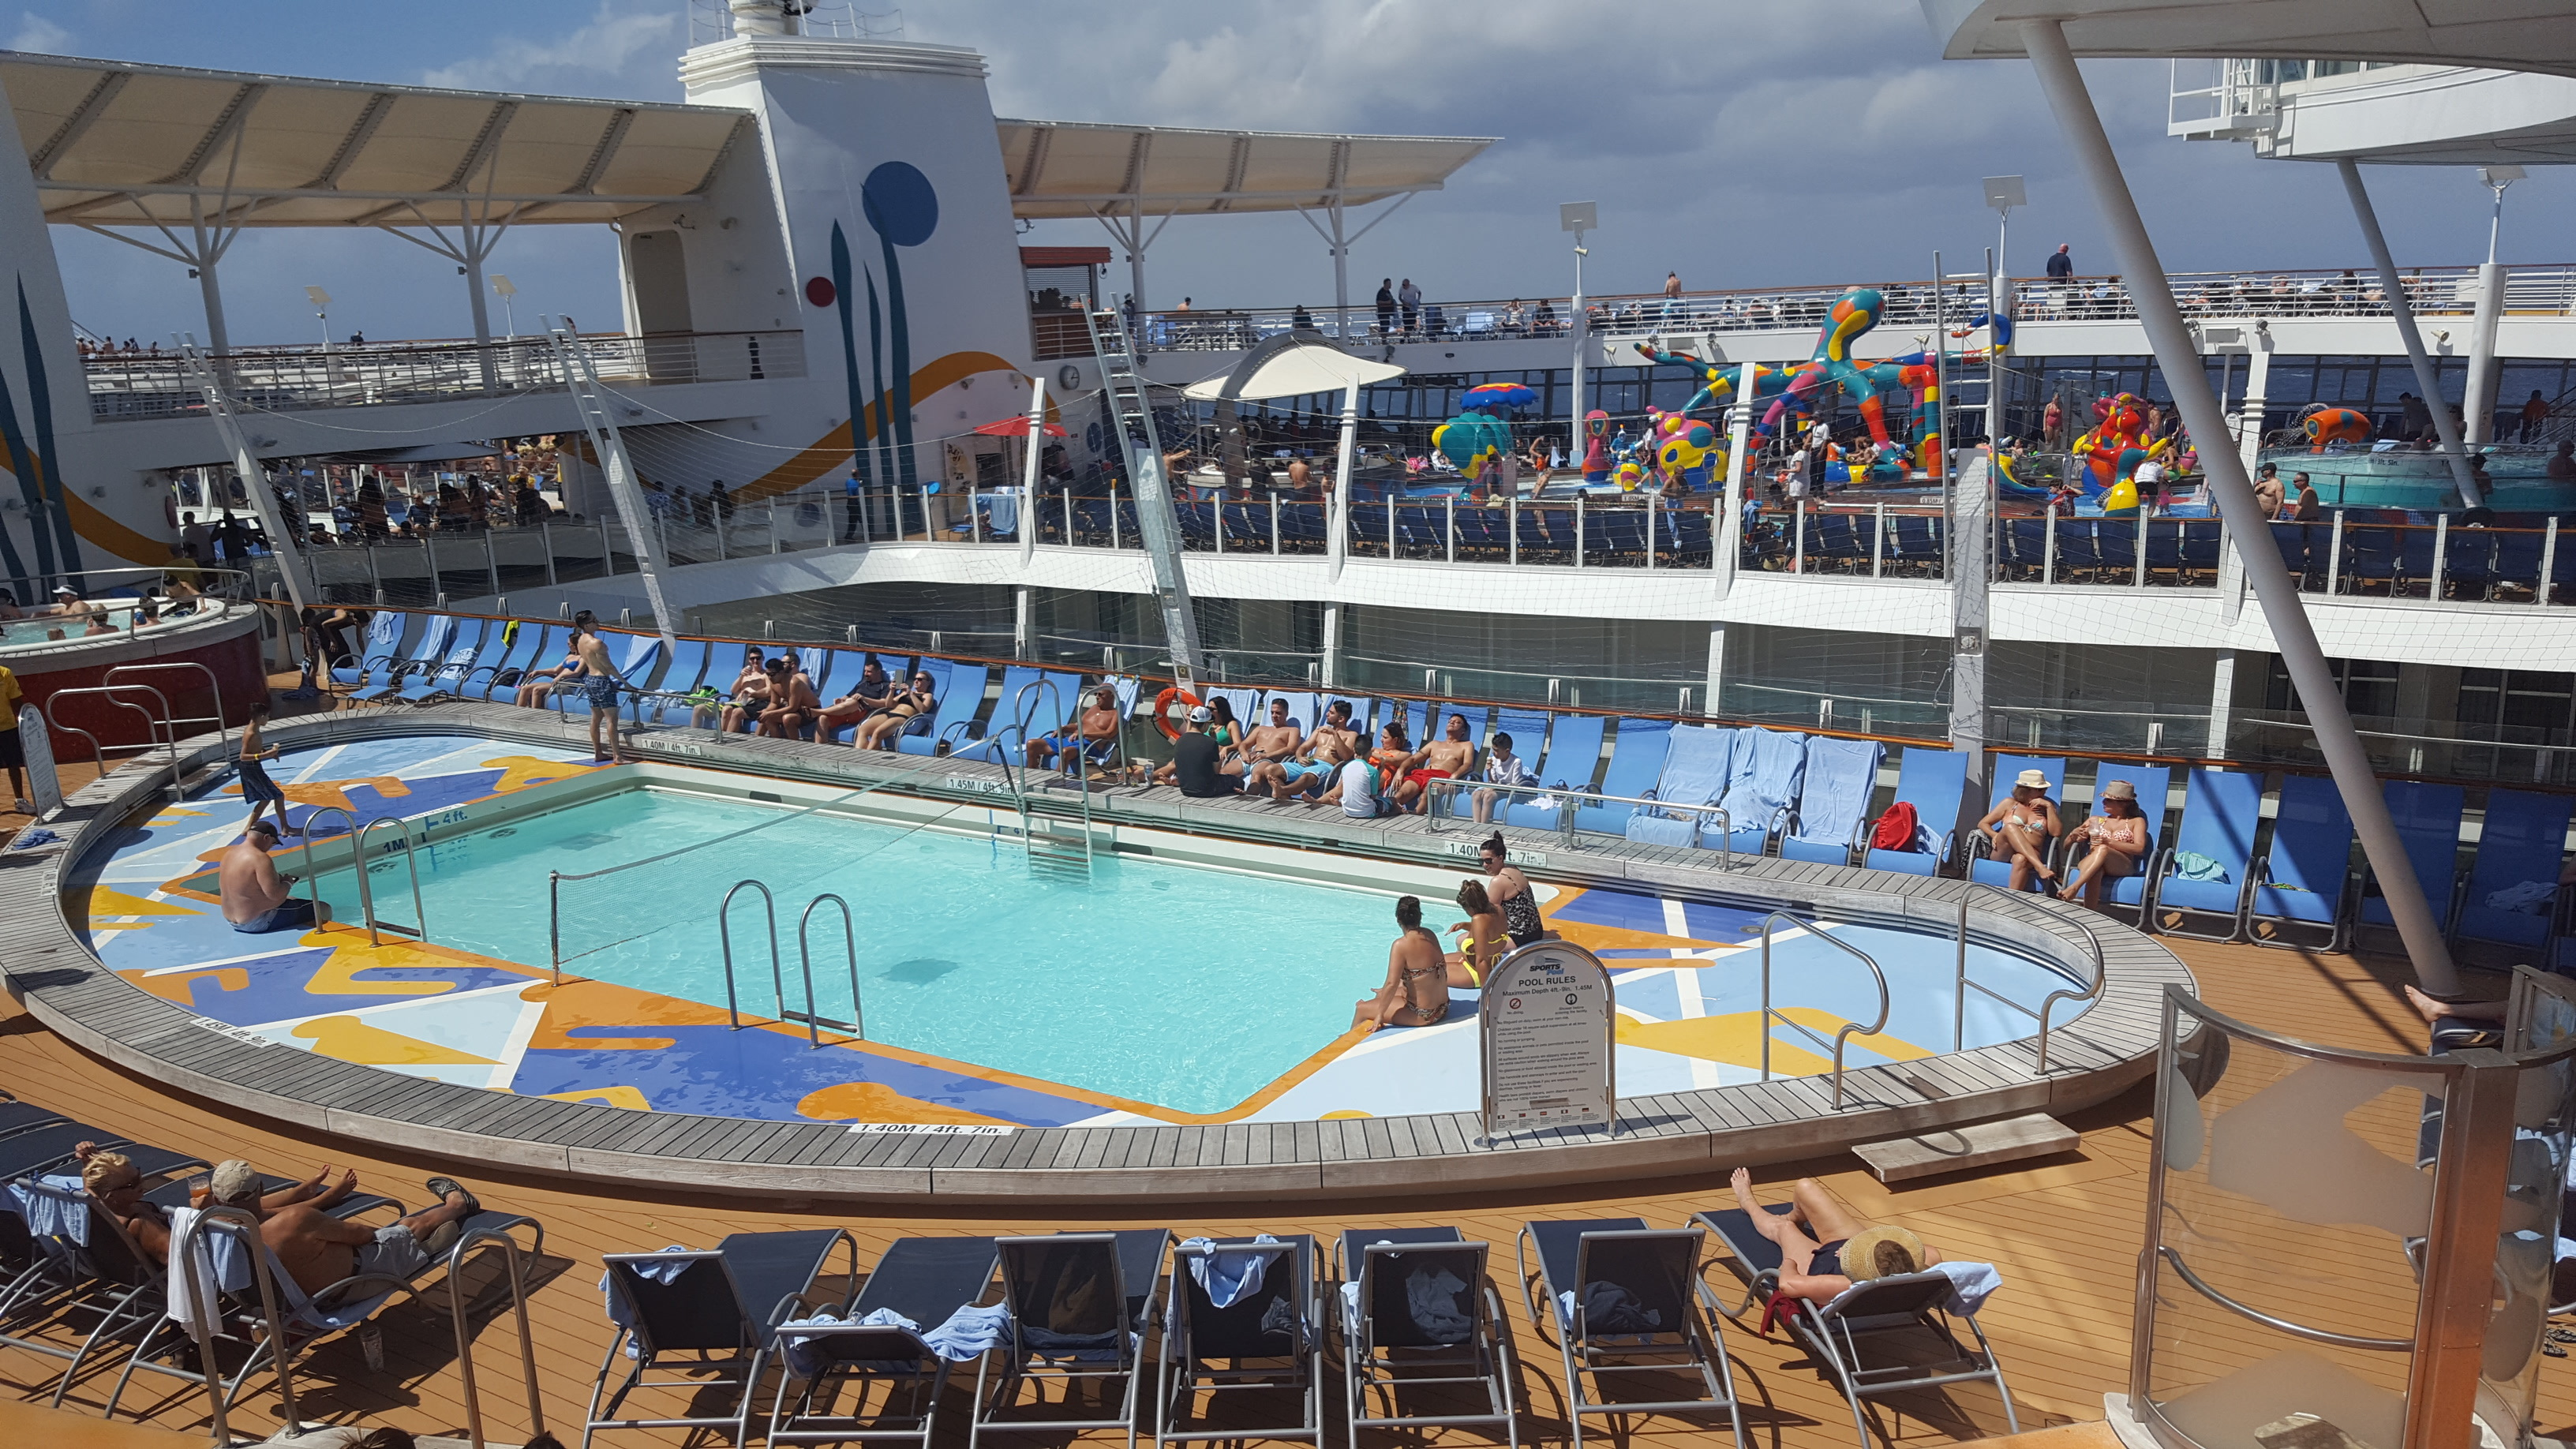 Allure of the seas march 2017 allure of the seas - Allure of the seas fort lauderdale port address ...